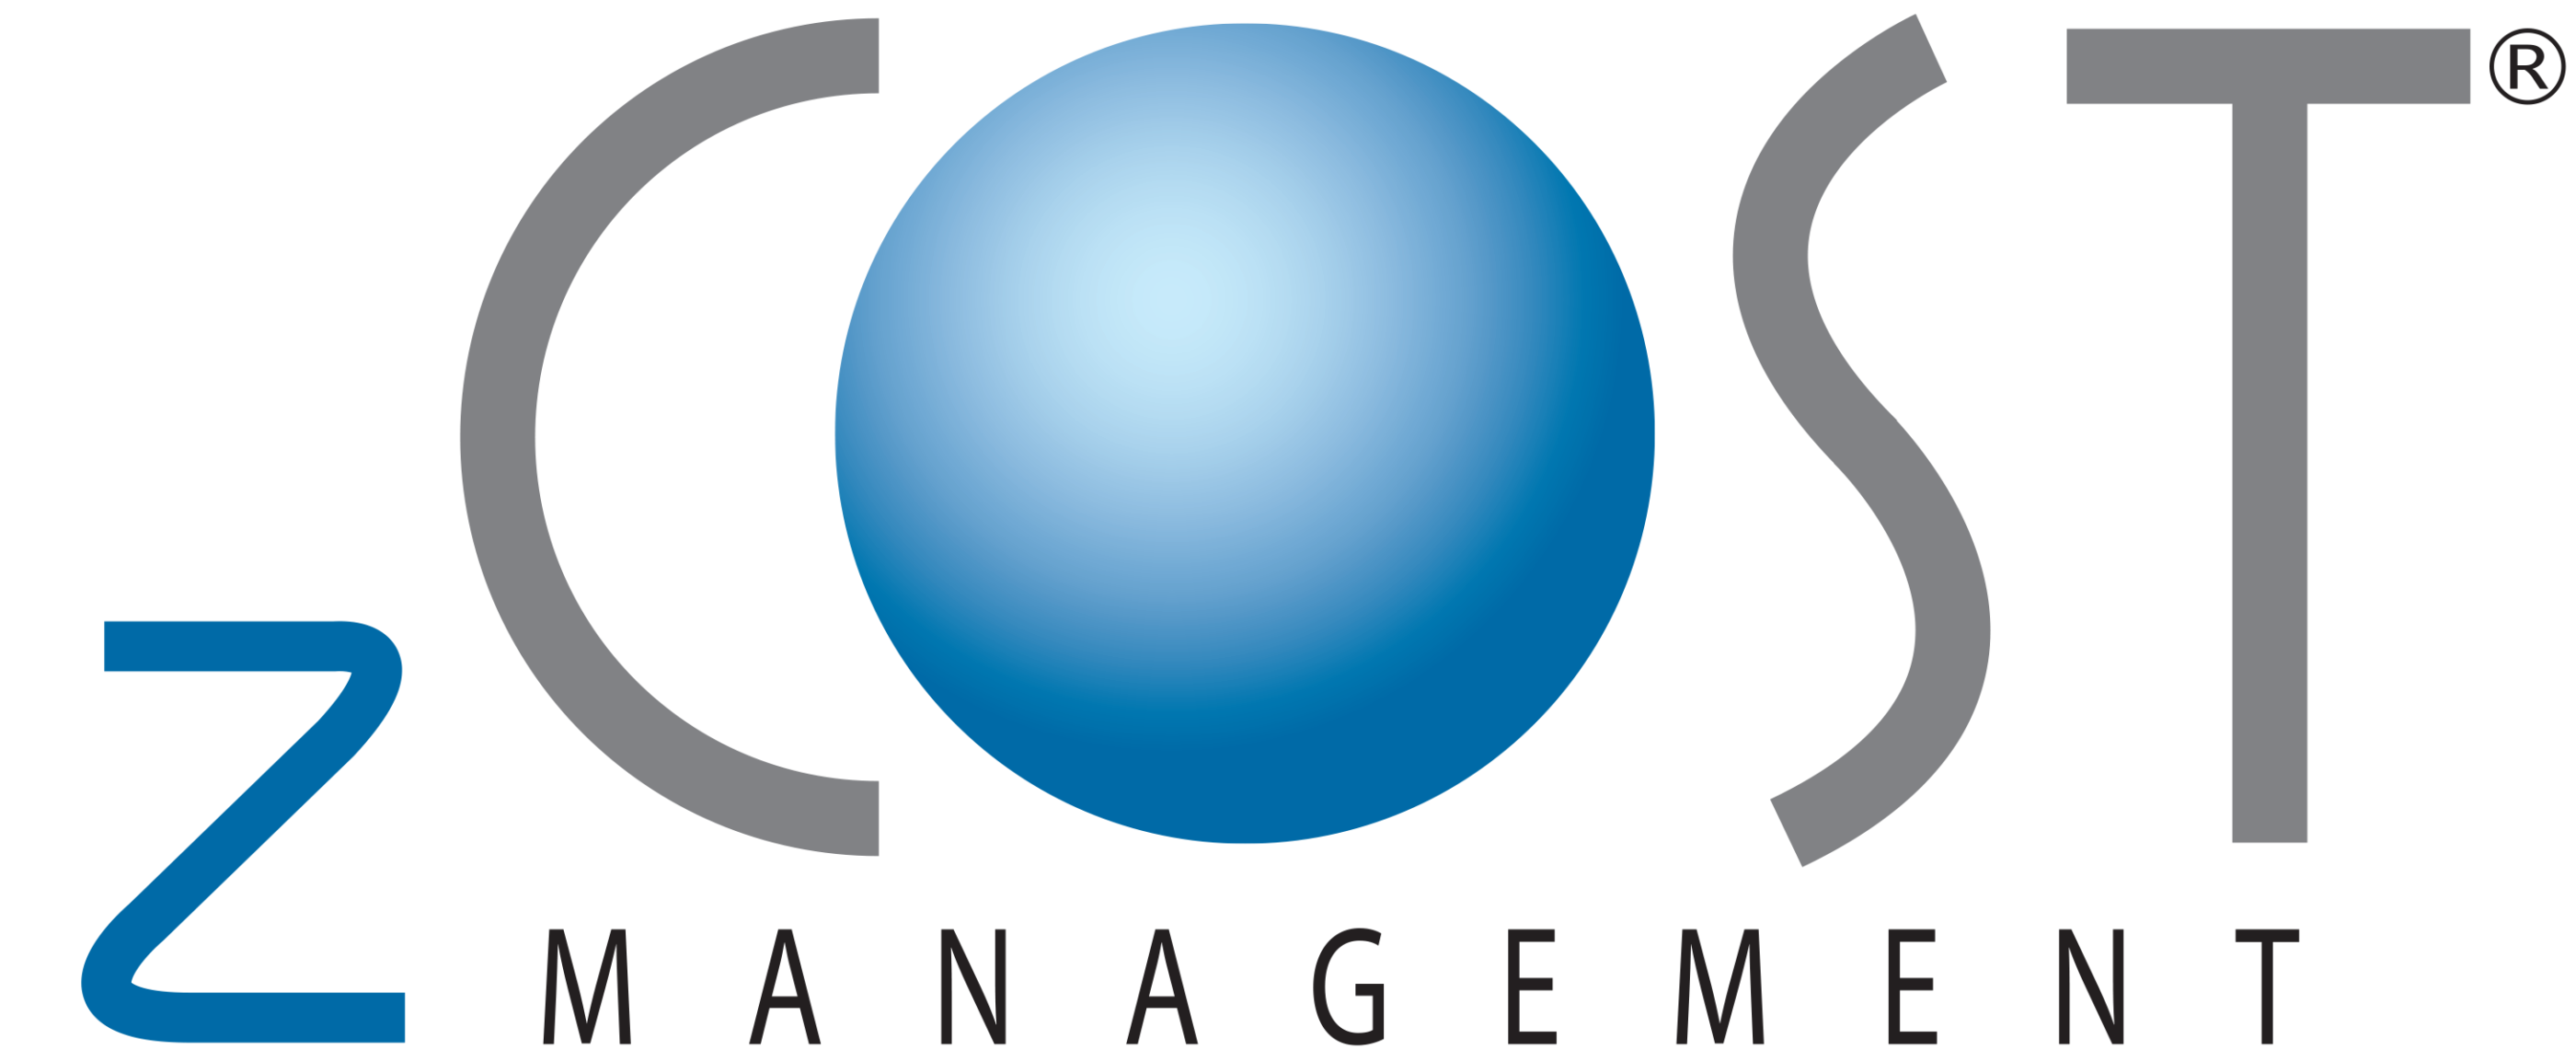 zCost management logo big